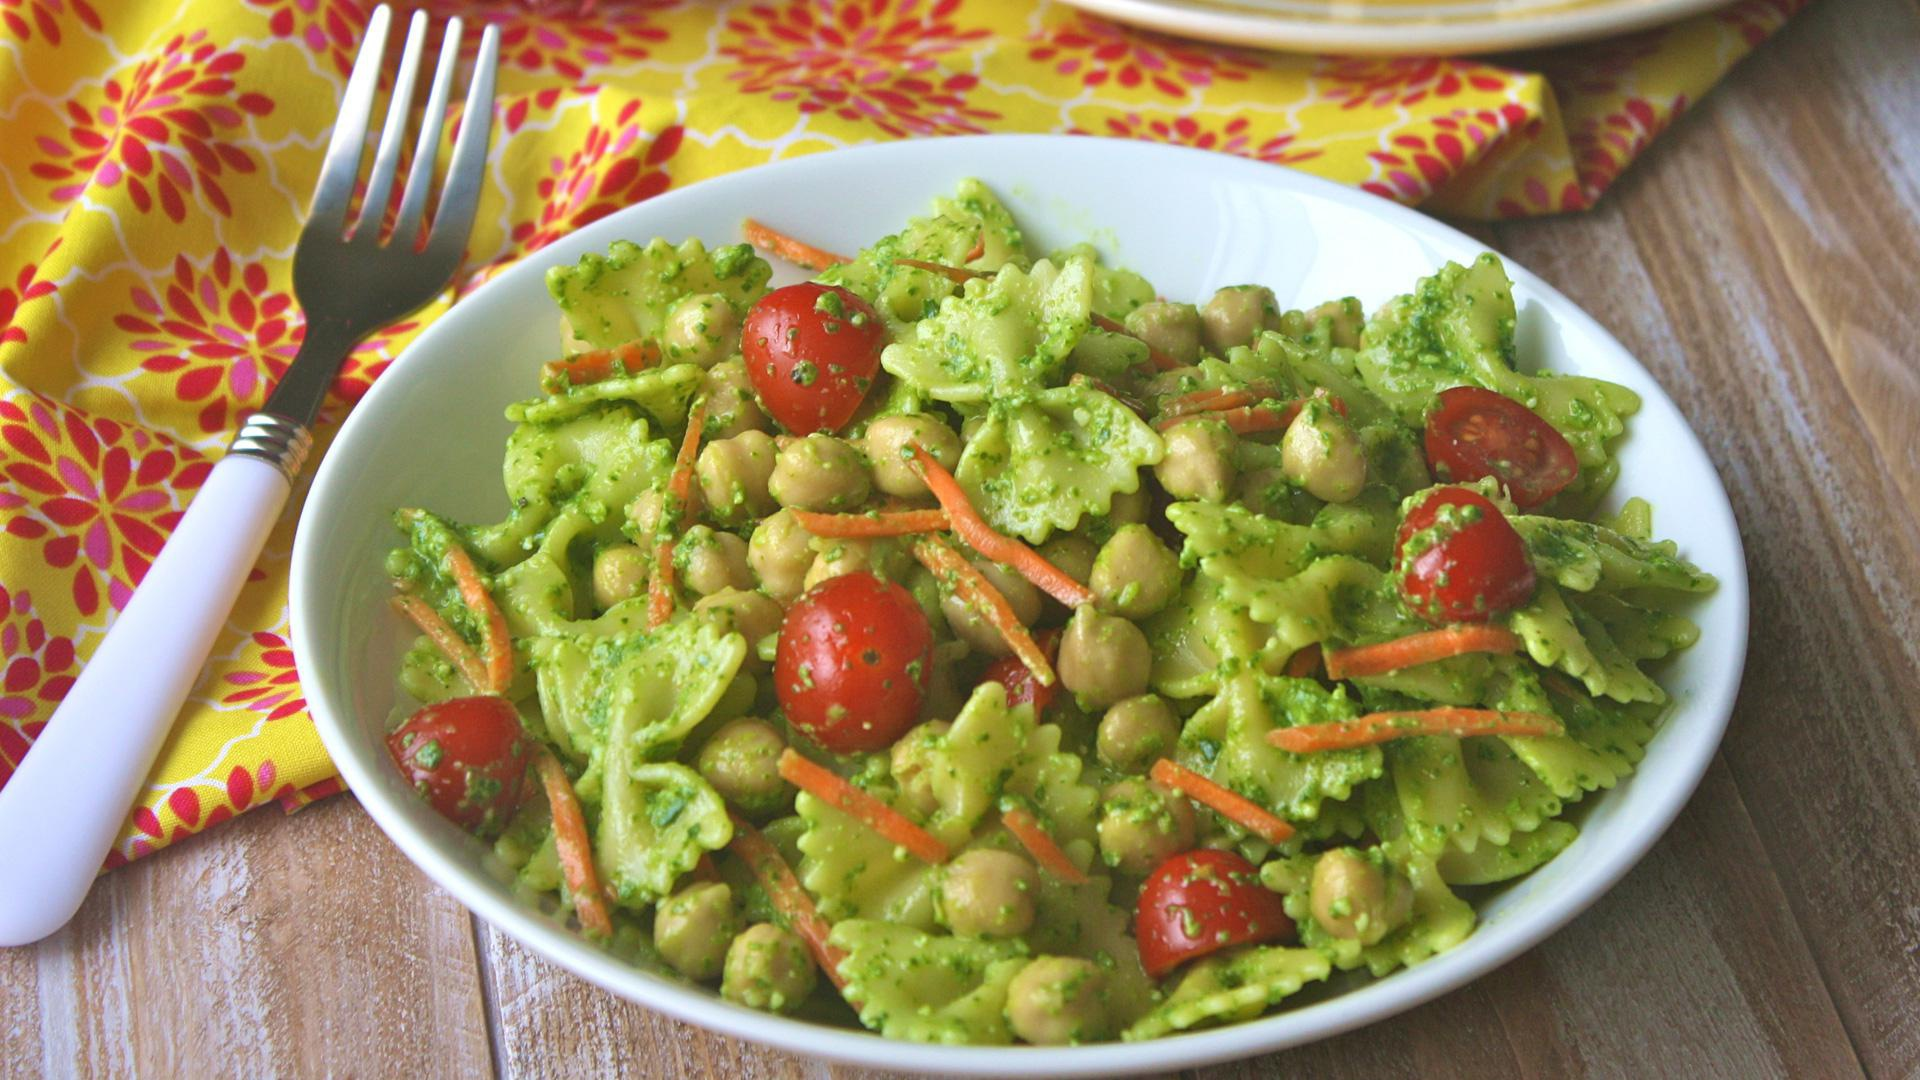 Meatless Monday: Spinach pesto pasta salad with chickpeas